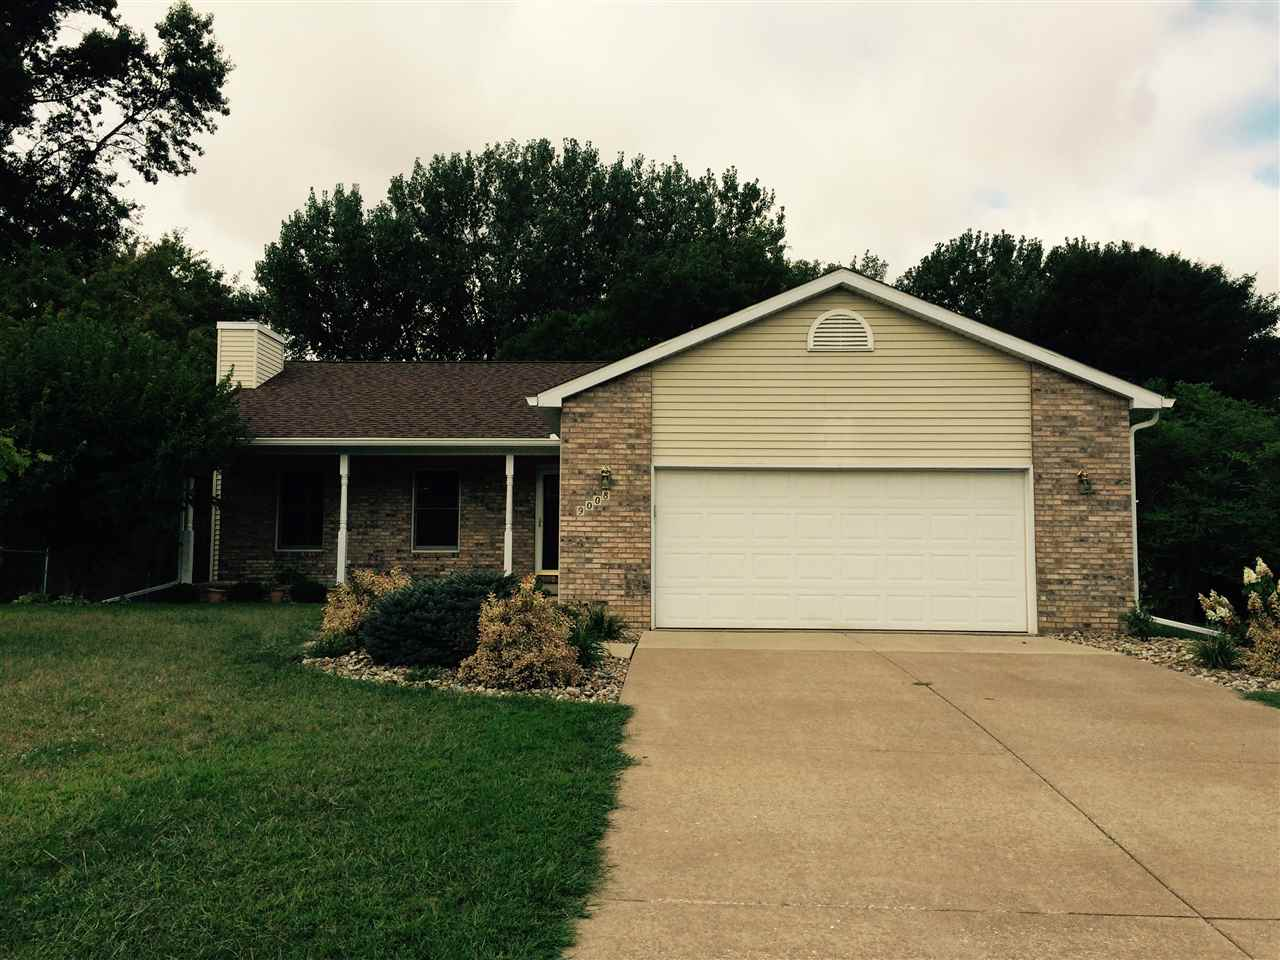 Rental Homes for Rent, ListingId:35062331, location: 9008 33RD ST W Rock Island 61201